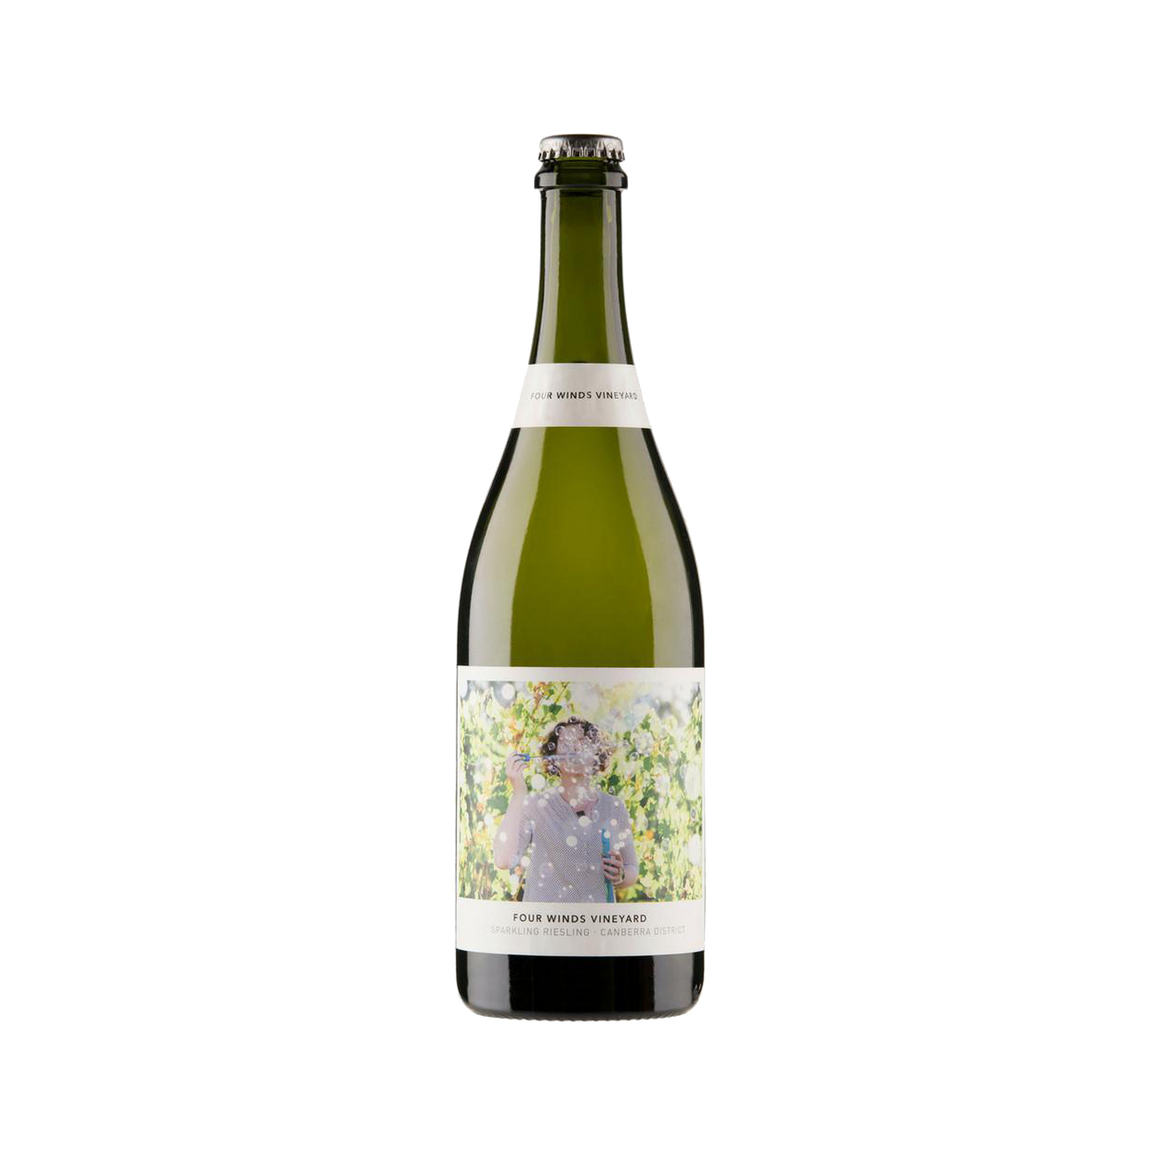 Four Winds Vineyard - 2019 Sparkling Riesling